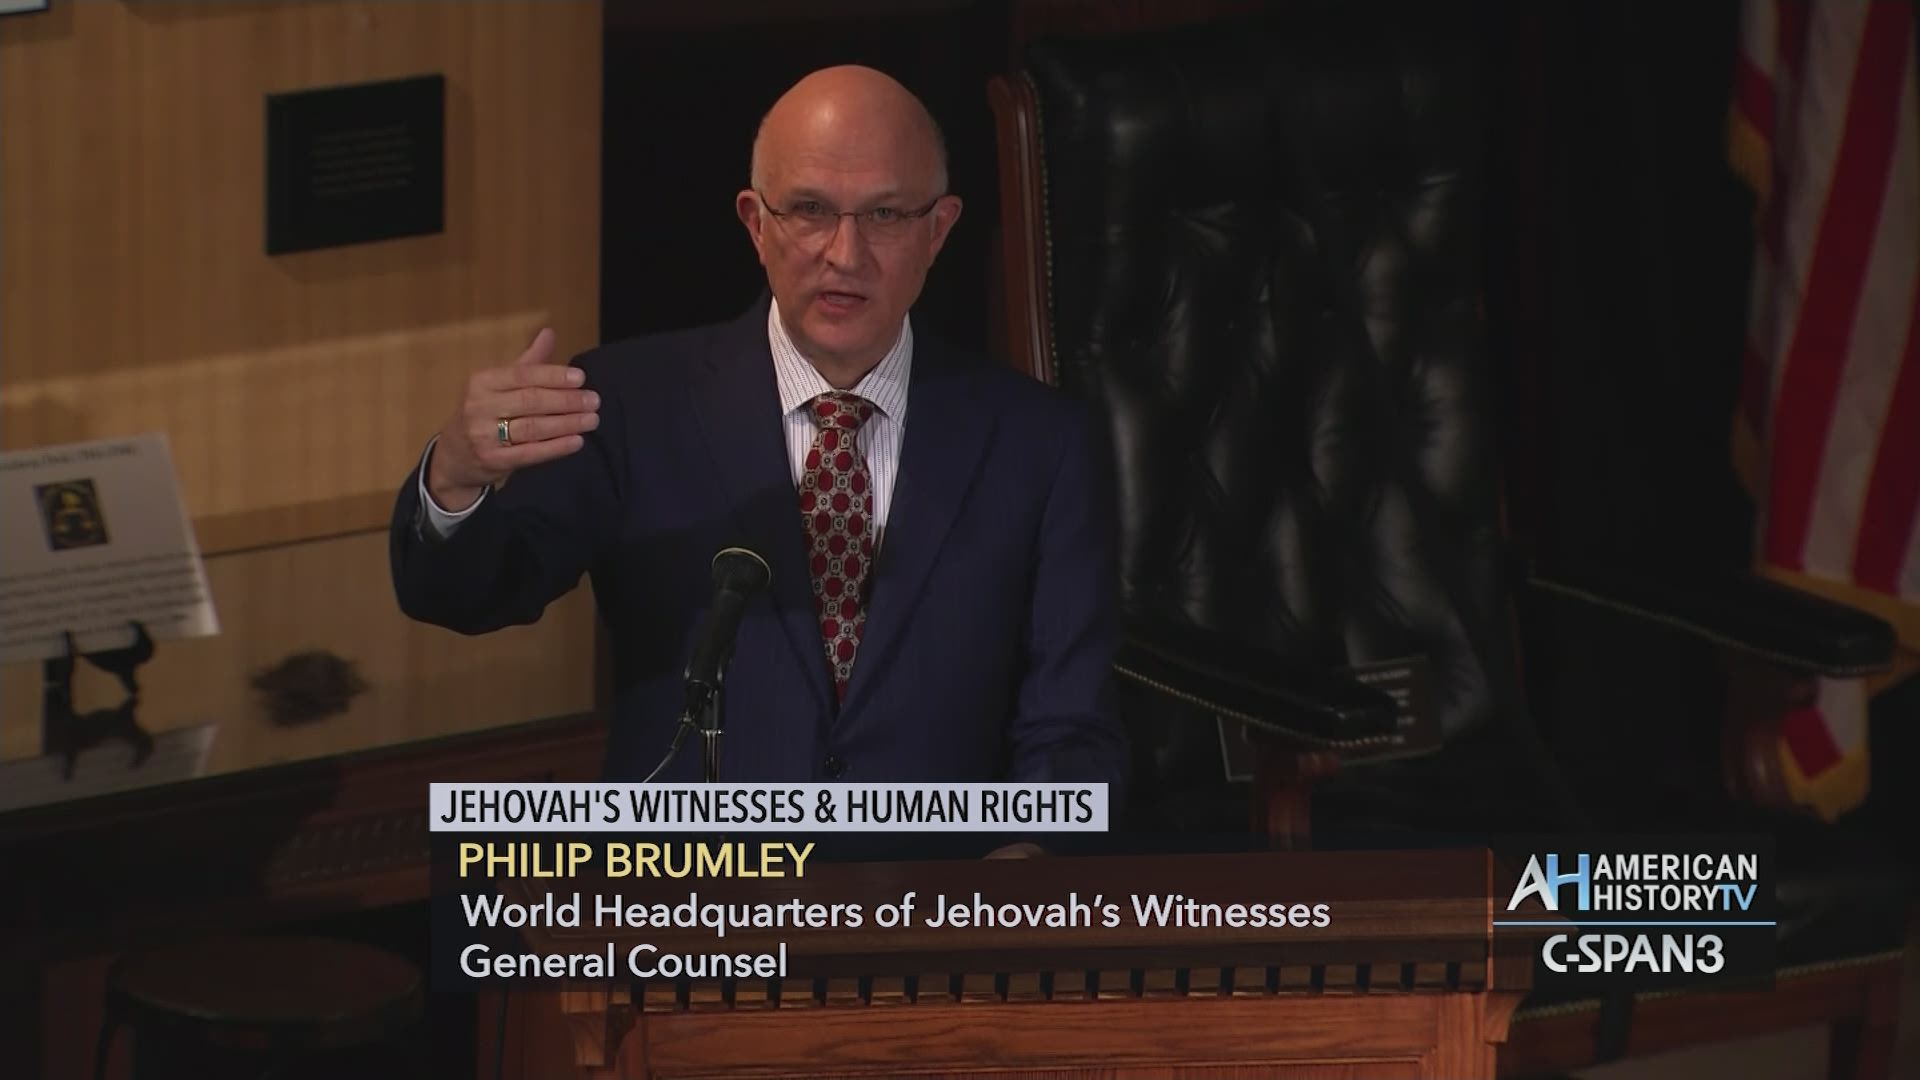 Jehovah's Witnesses and Human Rights